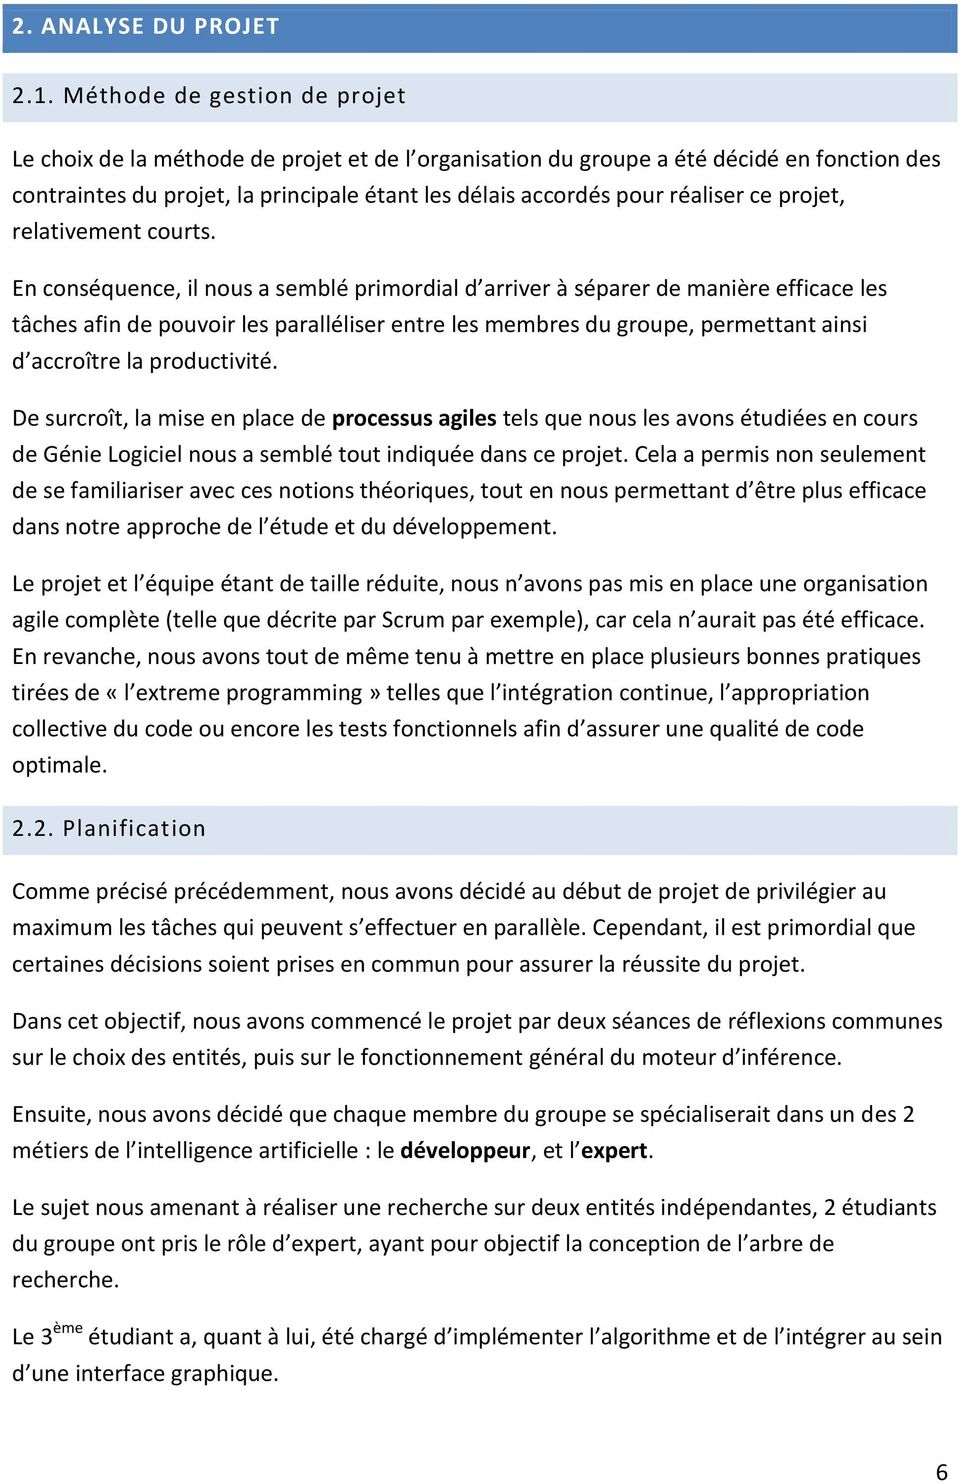 ce projet, relativement courts.